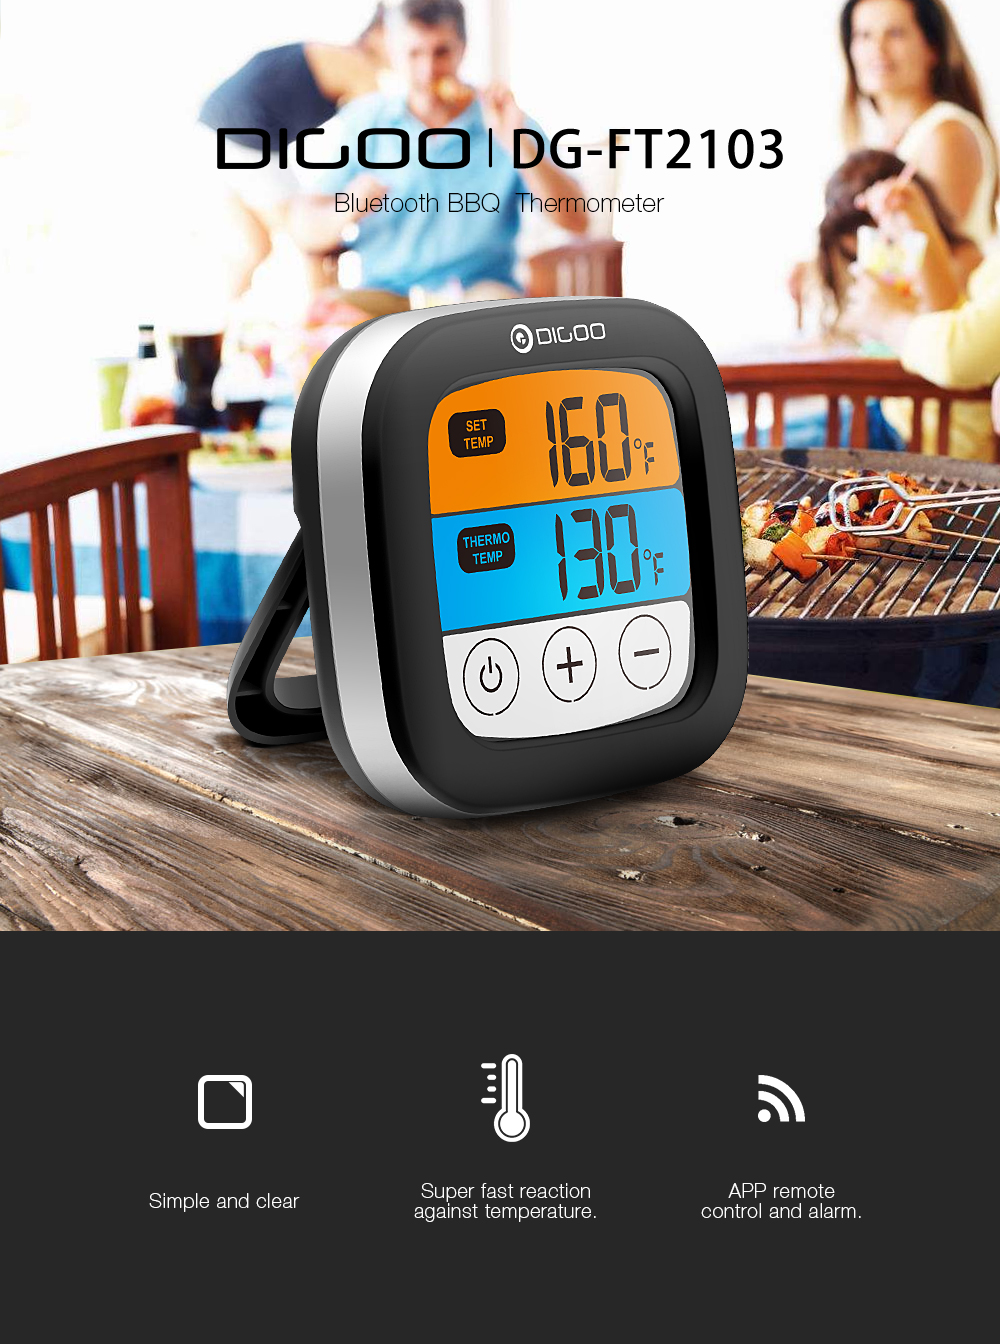 Digoo DG-FT2103 LED Touch Screen Digital Bluetooth Cooking Meat Thermometer with Stainless Steel Temperature Probe for Meat Turkey Barbecue Grilling Chicken